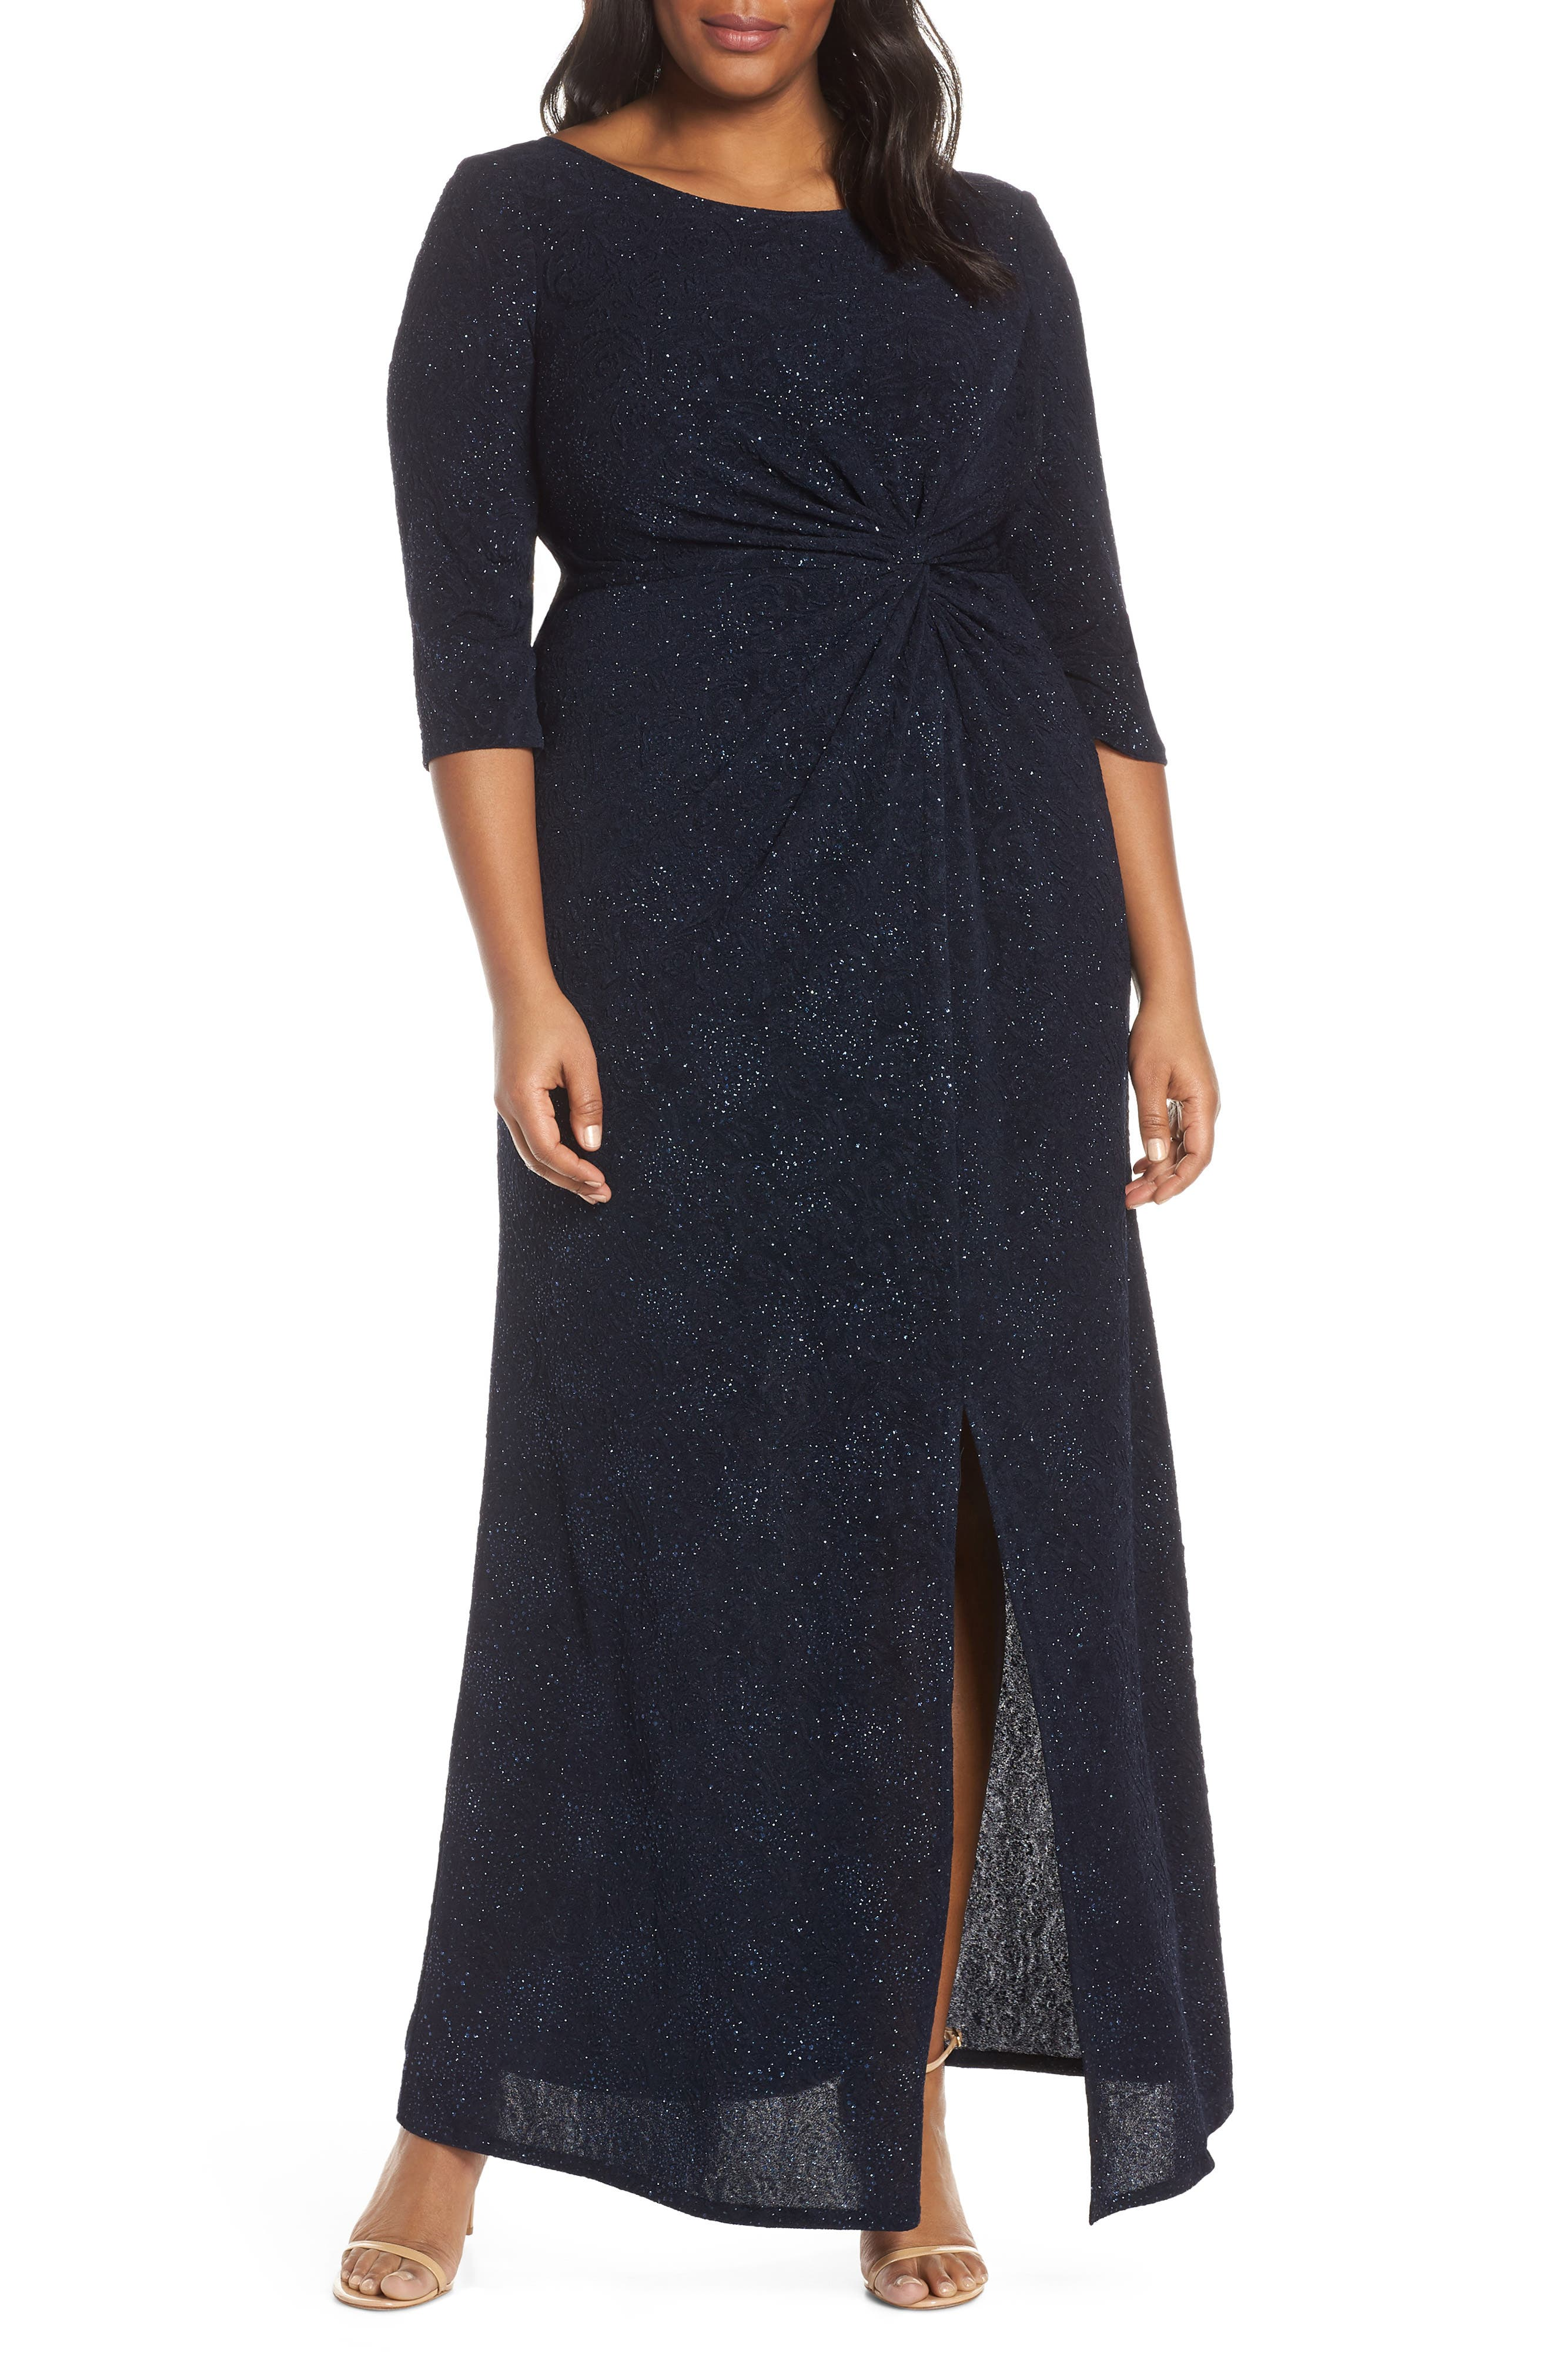 Plus Size Alex Evenings Knot Front Sequin Jacquard Evening Dress, Blue